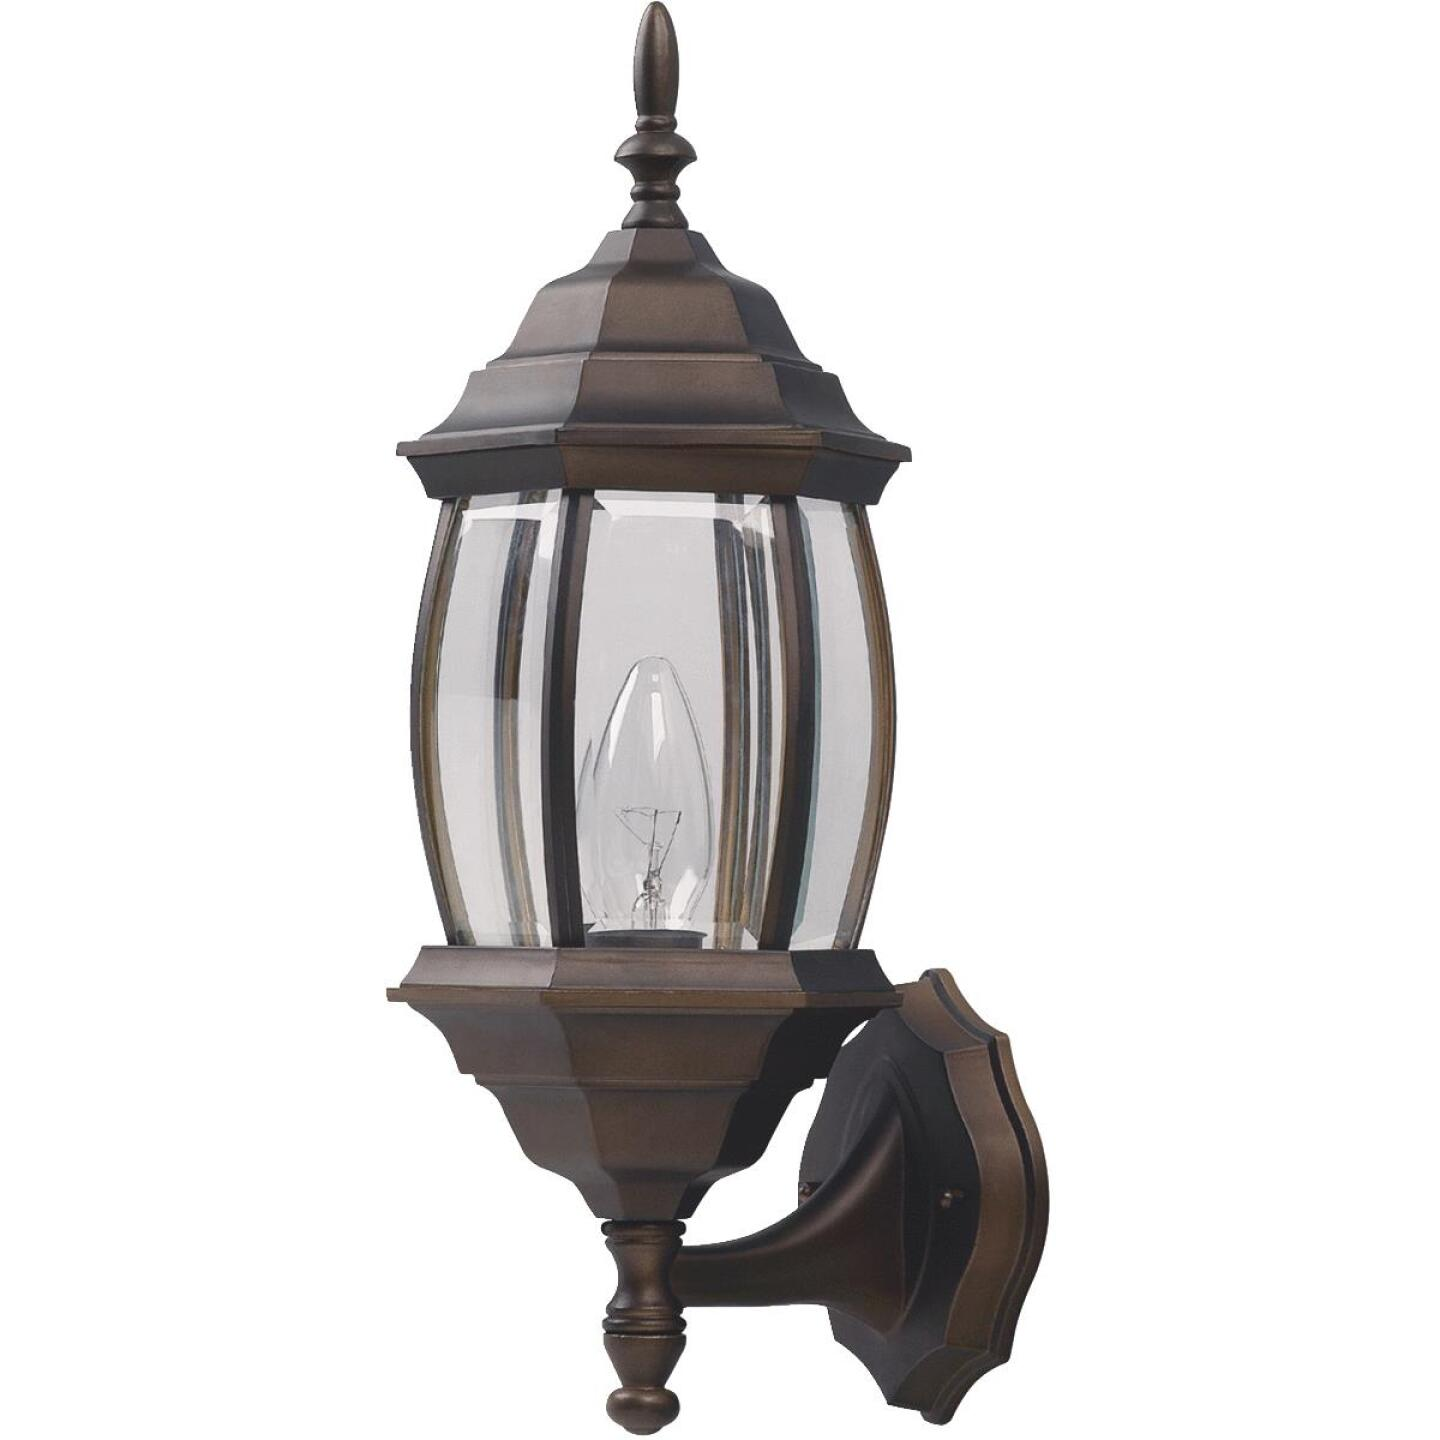 Home Impressions Oil Rubbed Bronze Incandescent Type A or B Outdoor Wall Light Fixture (2-Pack) Image 2